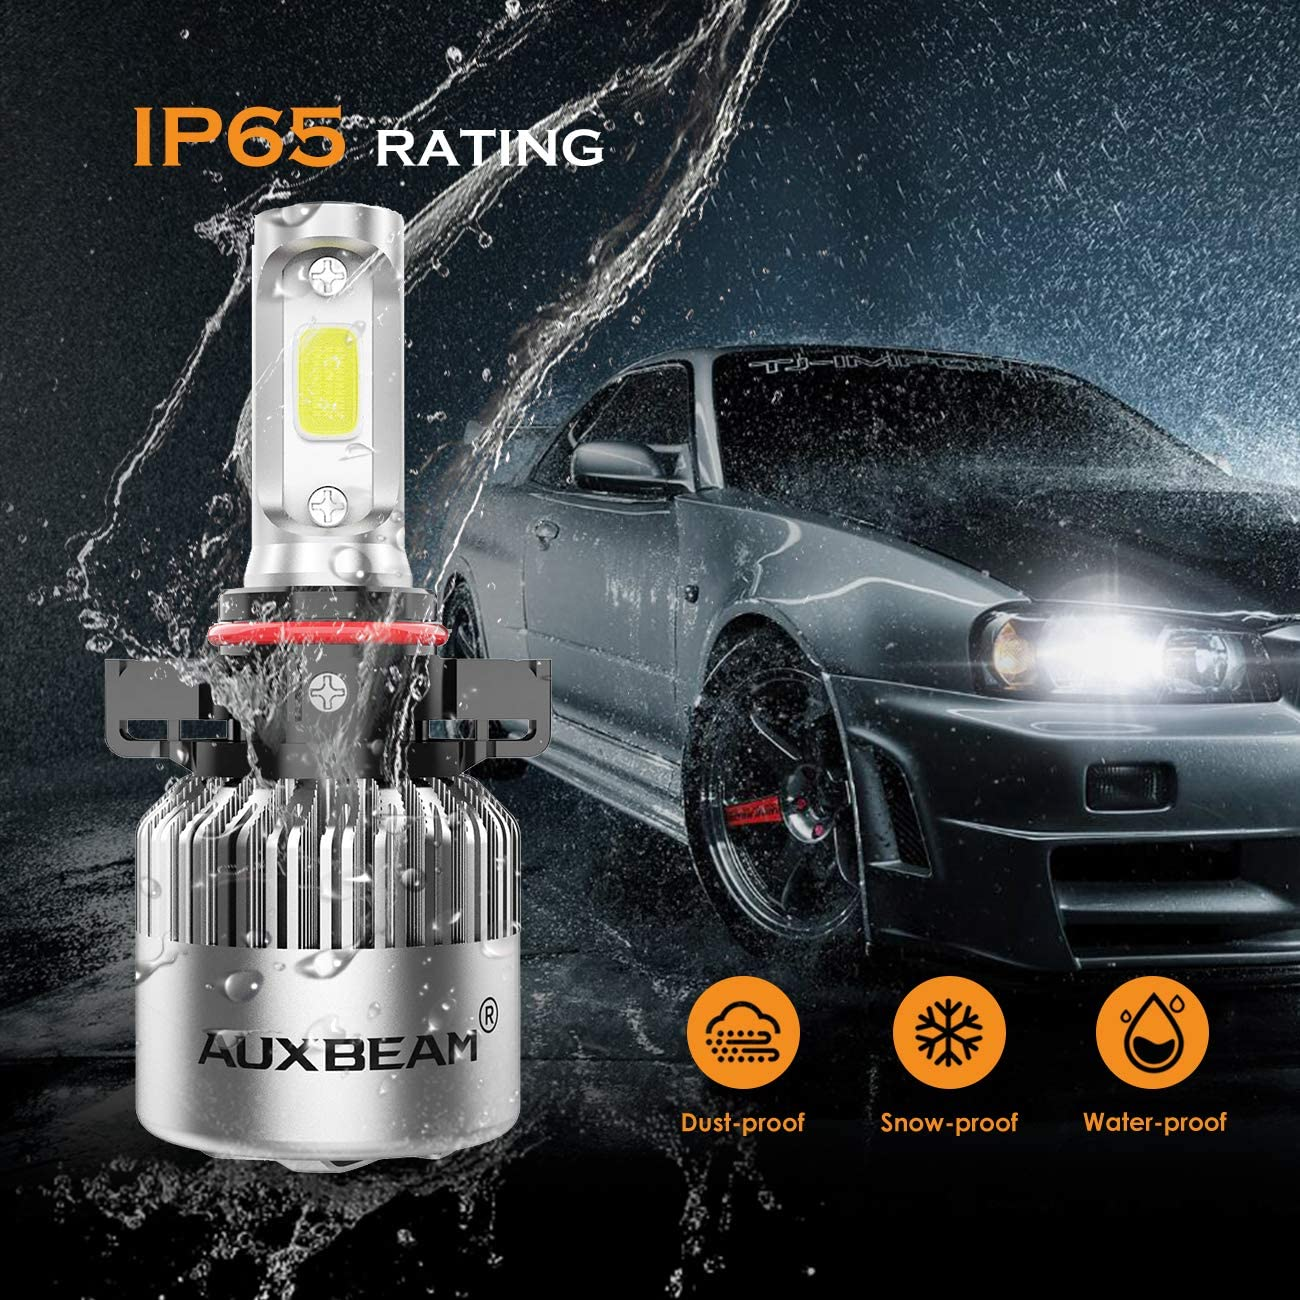 Auxbeam LED Headlights F-S2 Series 5202 LED Headlight Bulbs with 2 Pcs of Led Headlight Bulb Conversion Kits 72W 8000LM COB Led Chips Fog Light